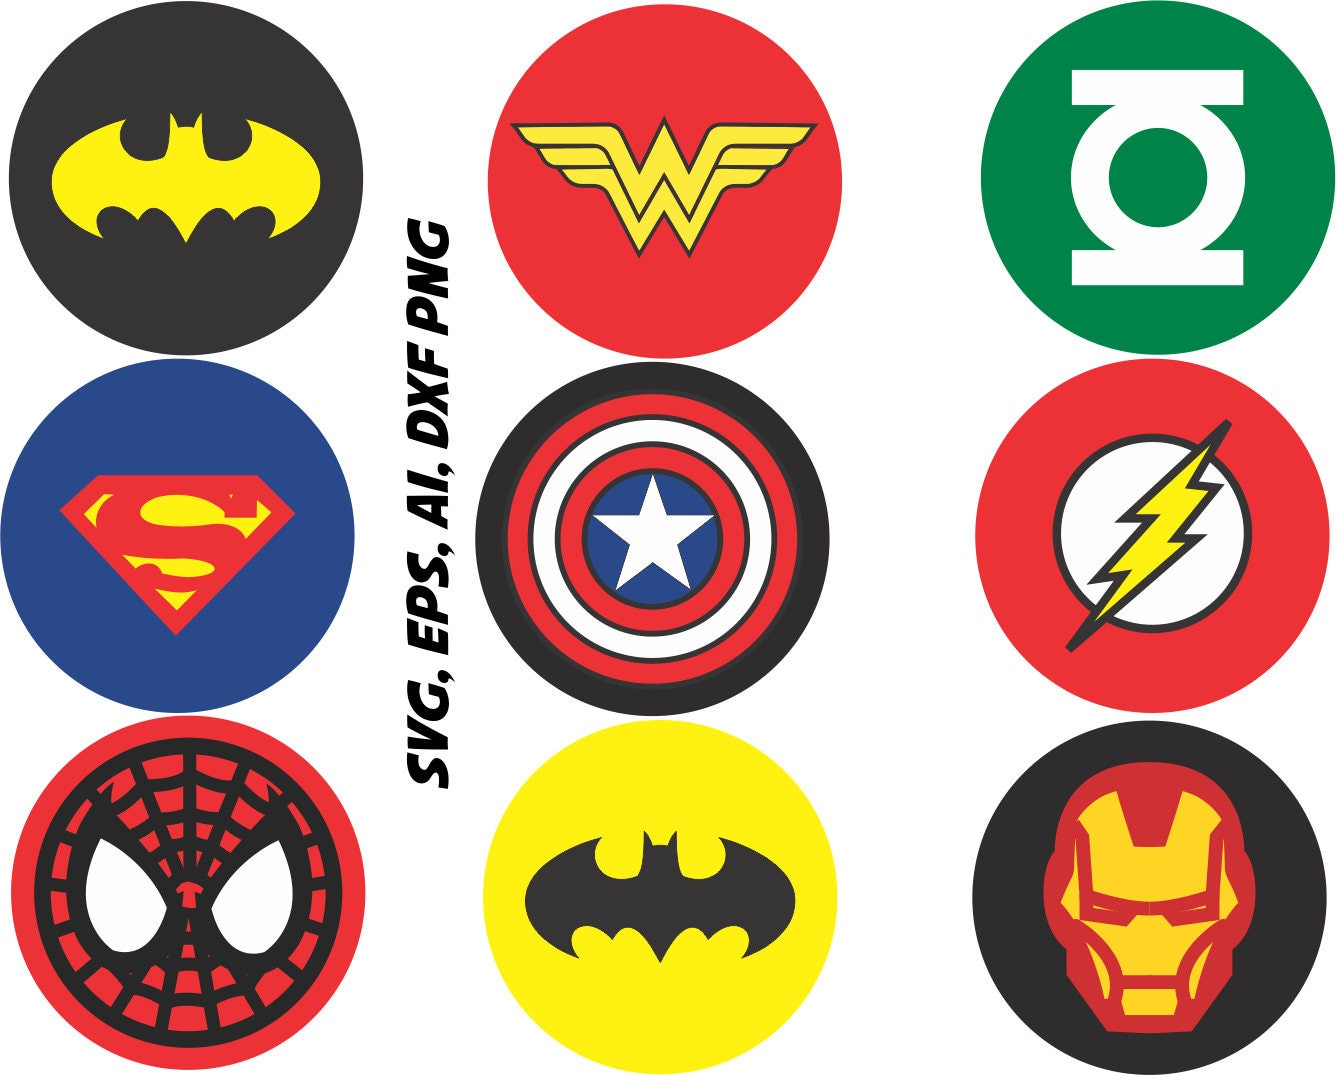 Superhero logos SVG Captain america, ironman, batman, etc ...